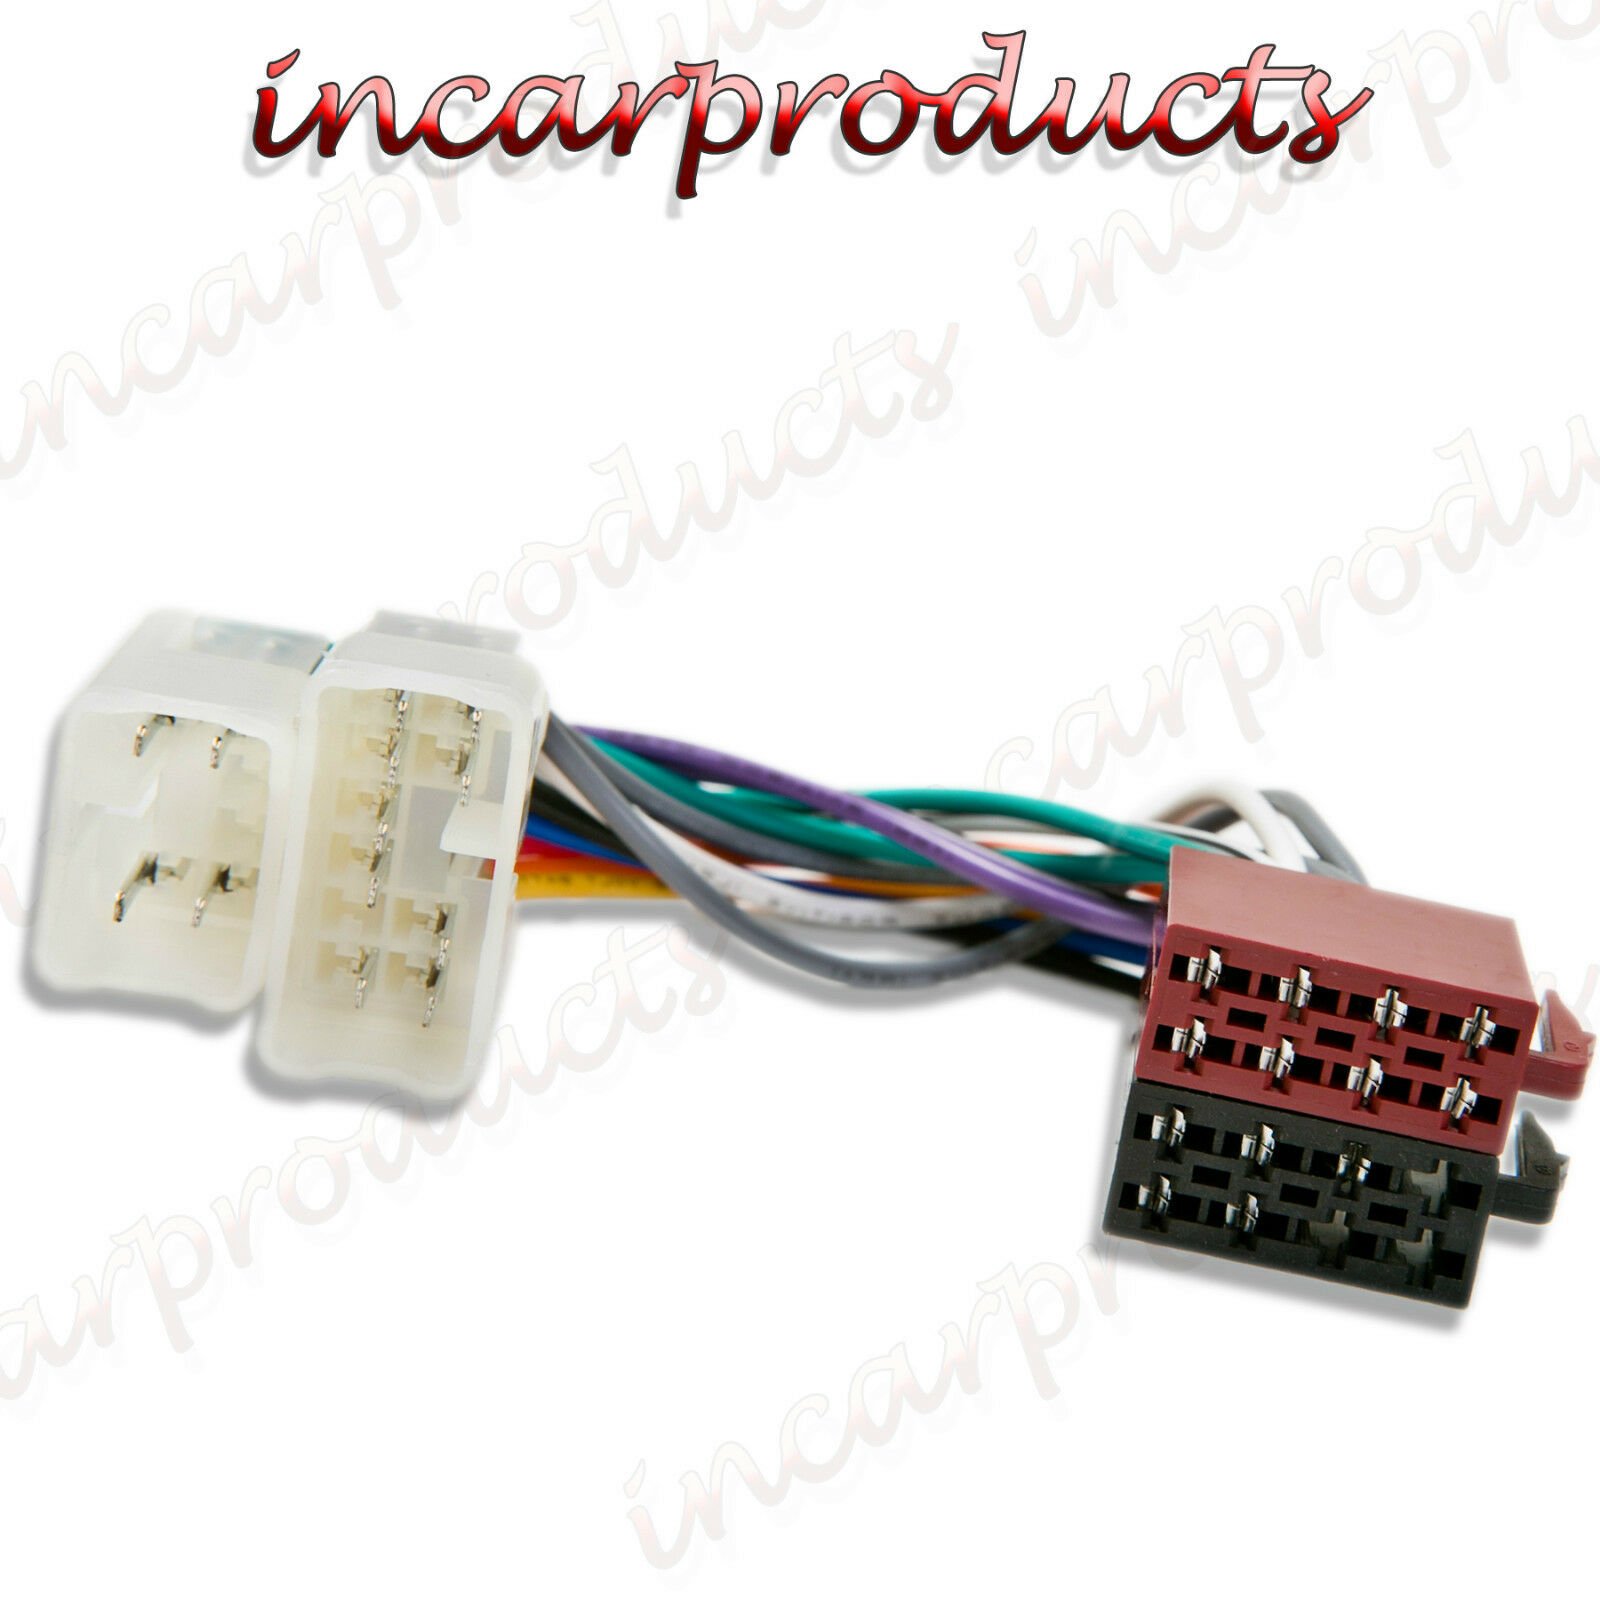 Swell Toyota Radio Wiring Harness Adapter Wiring Diagram Wiring Digital Resources Indicompassionincorg